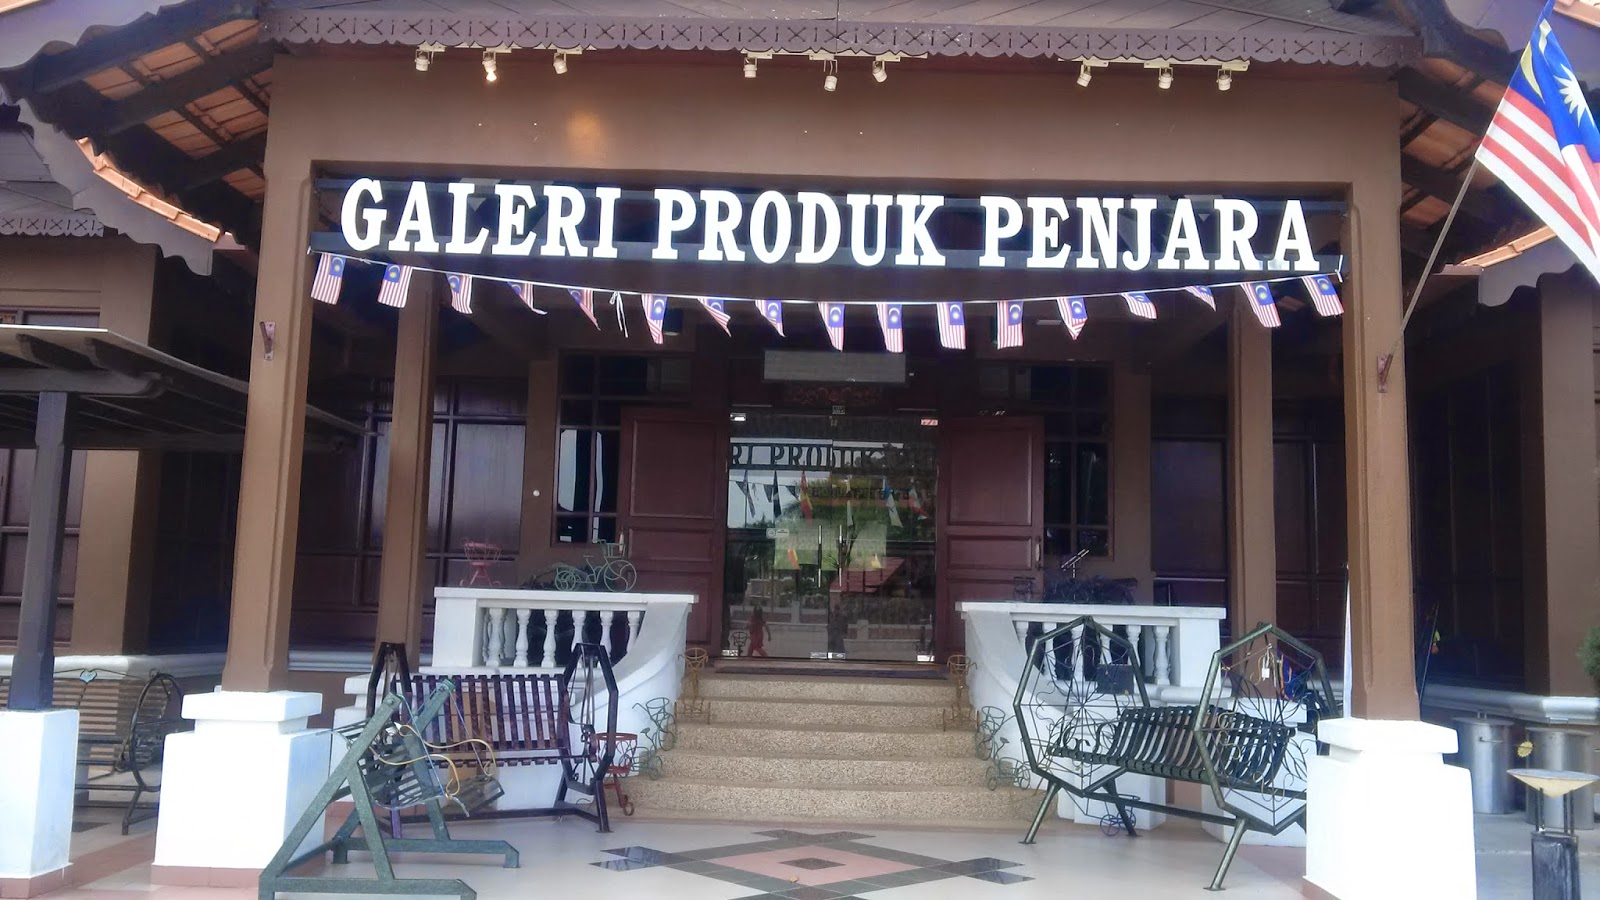 melaka galeri produk penjara, homemade products made in prison, melaka traditional homemade, frozen food, curry puff, samosa, murtabak, tourism, travel